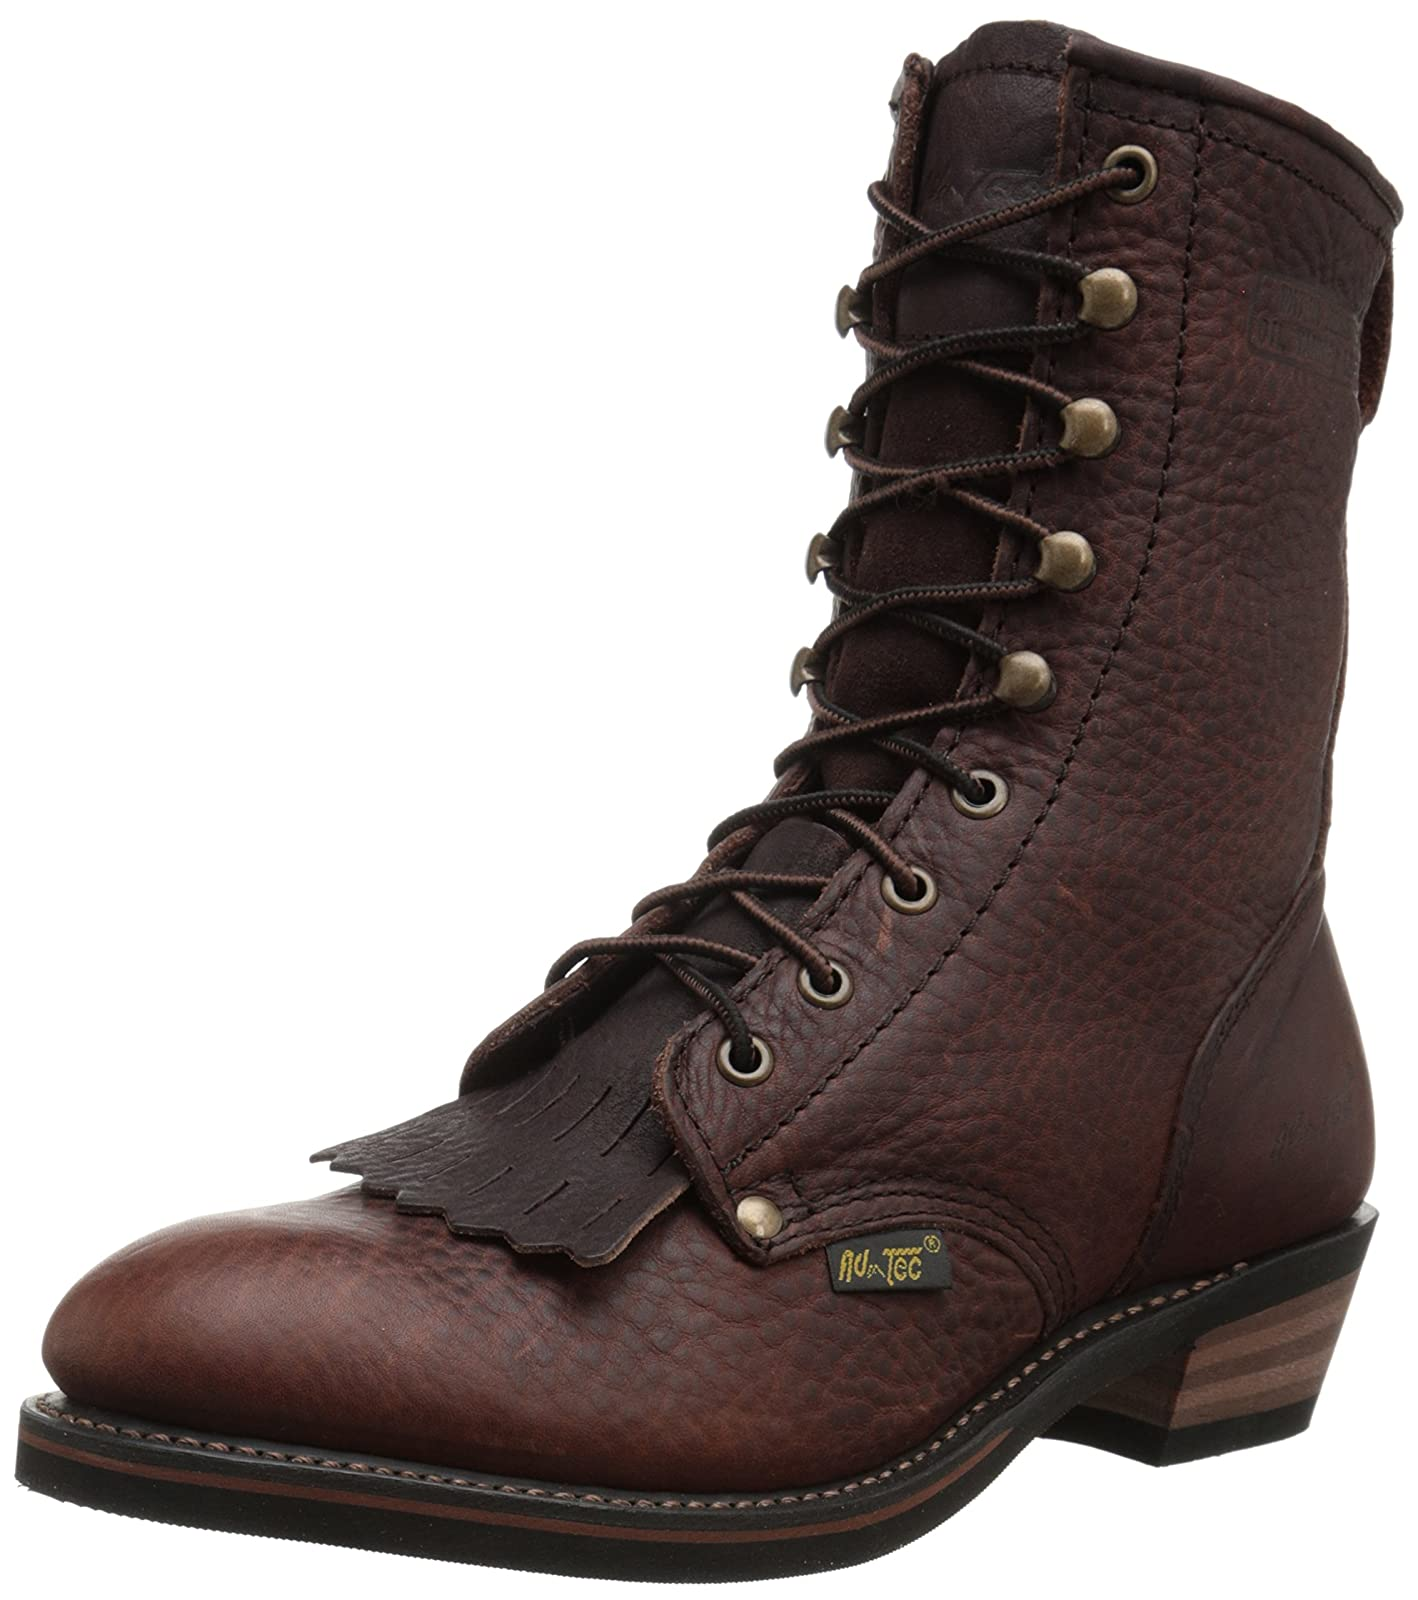 Adtec Men's 9 Inch Packer-M Boot Chestnut 9 M US - 1